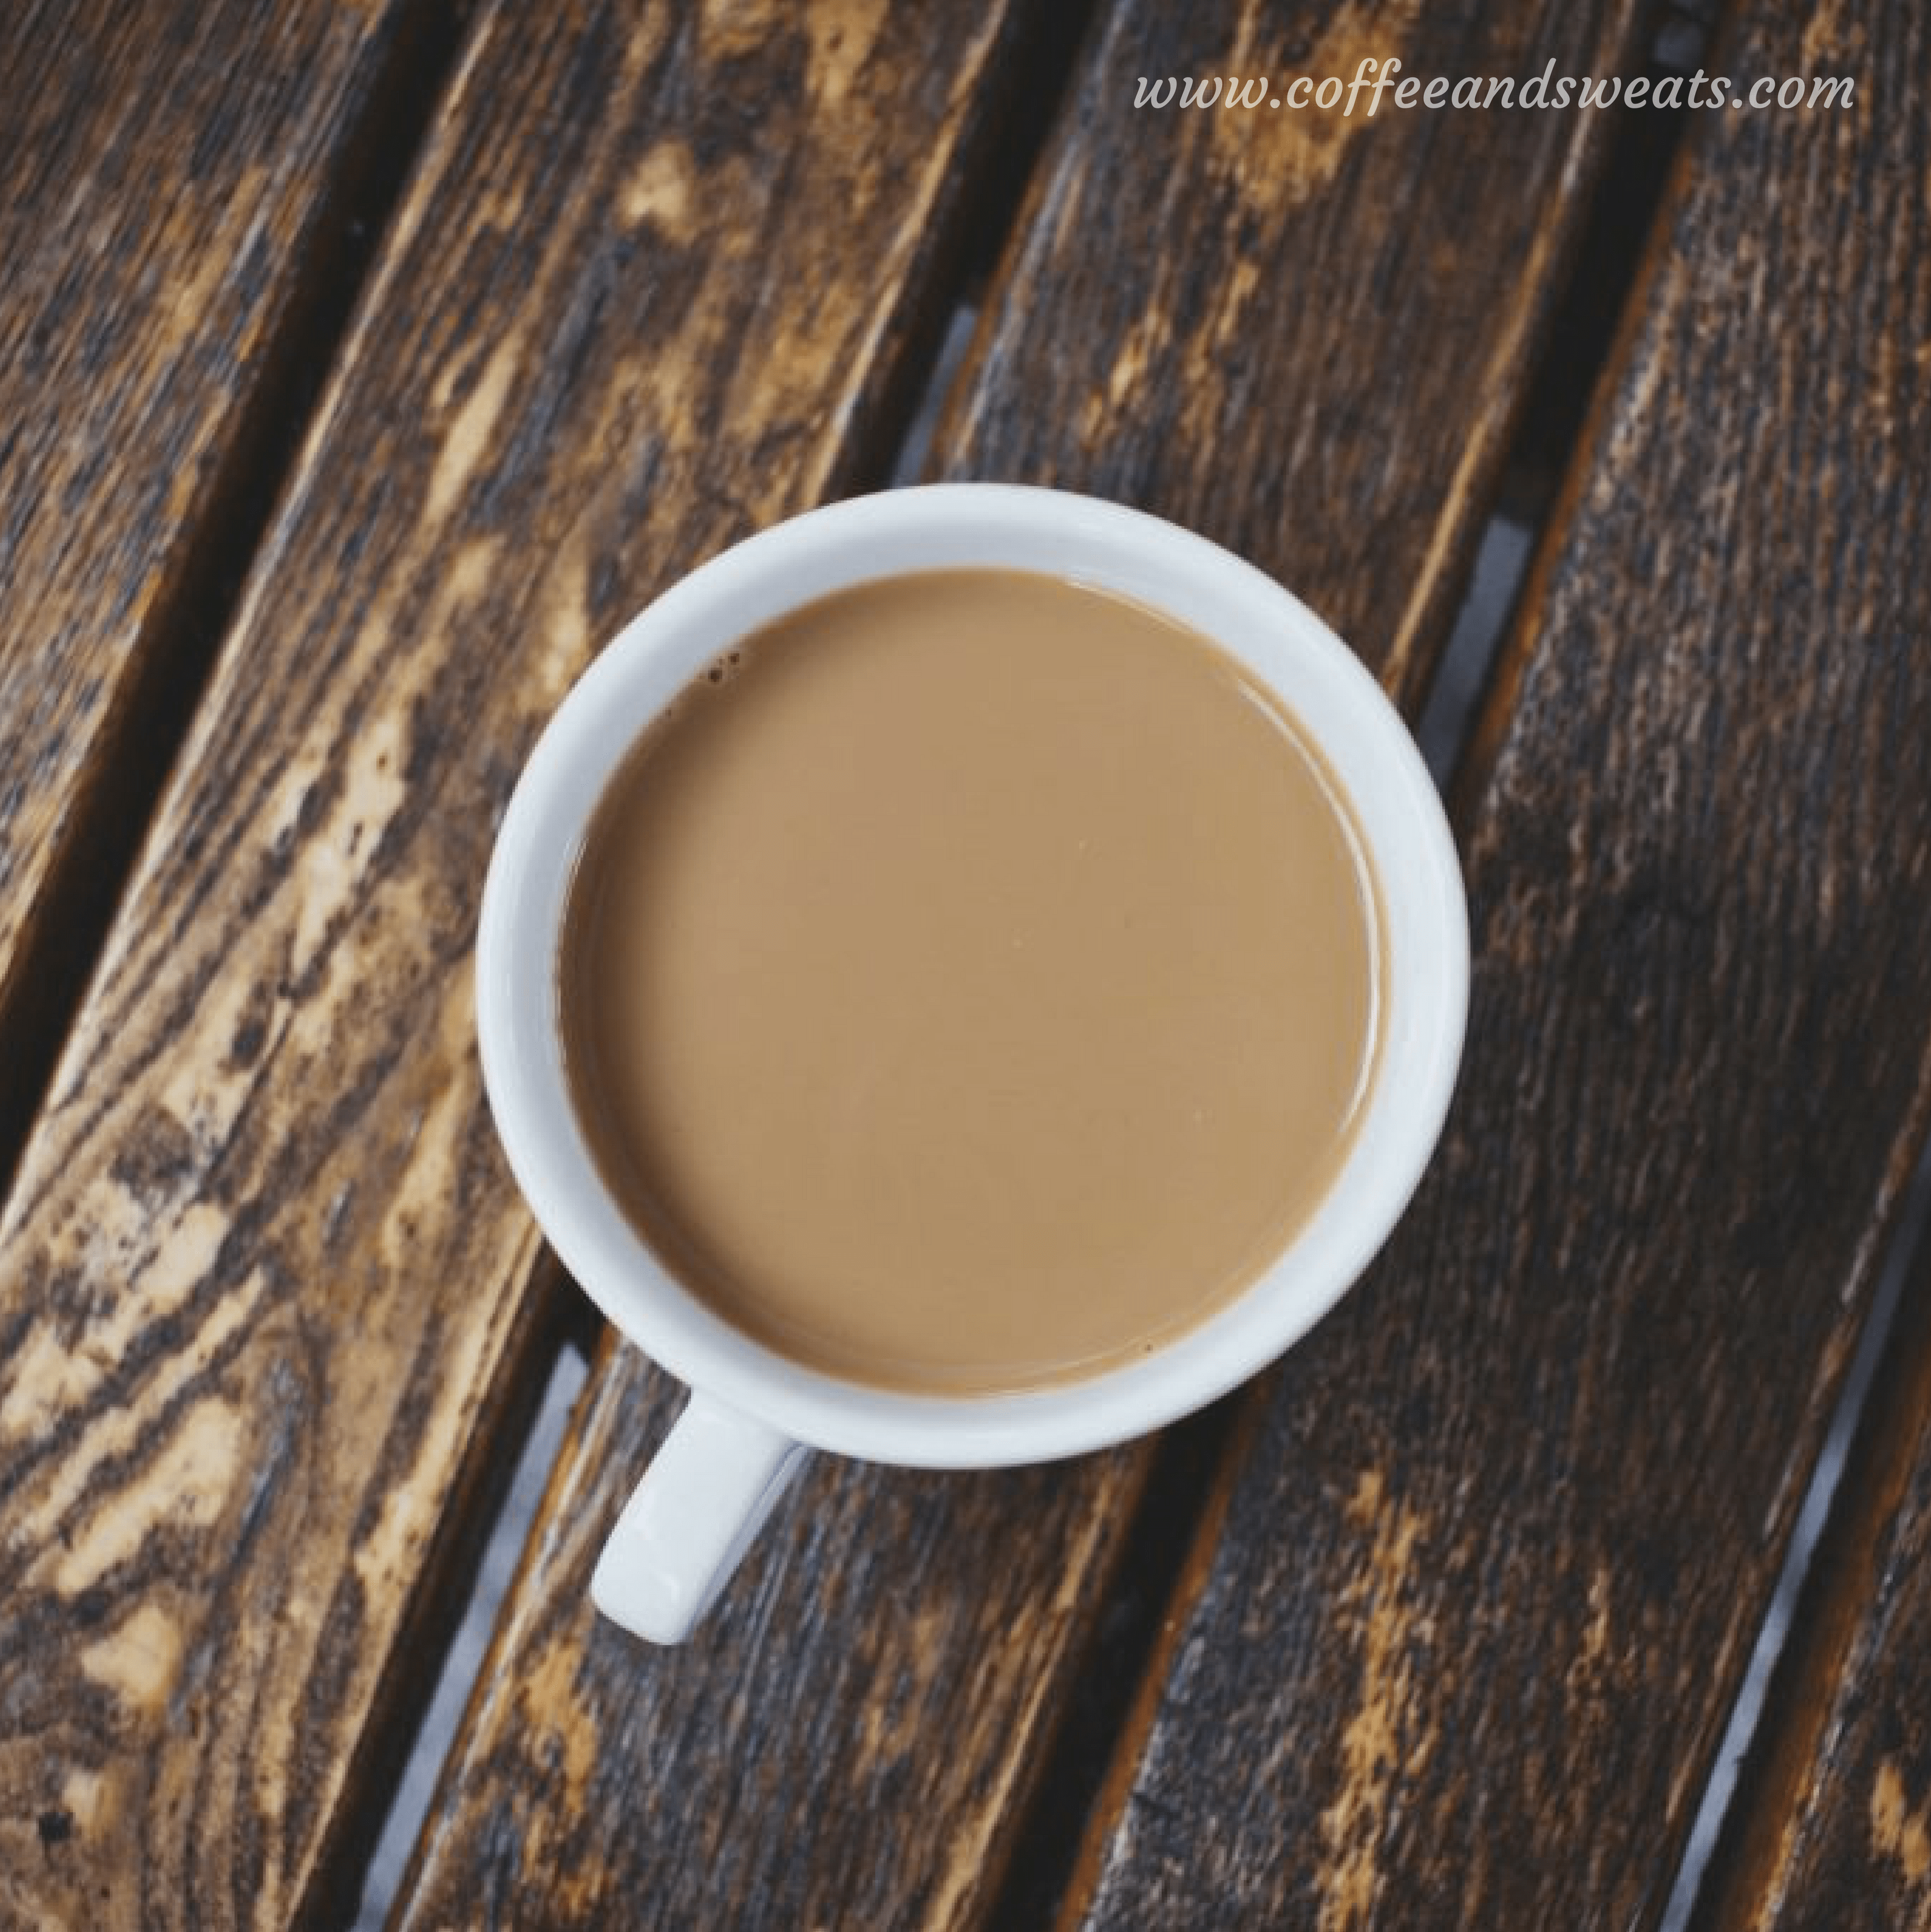 Constant Coffee and Life Changes